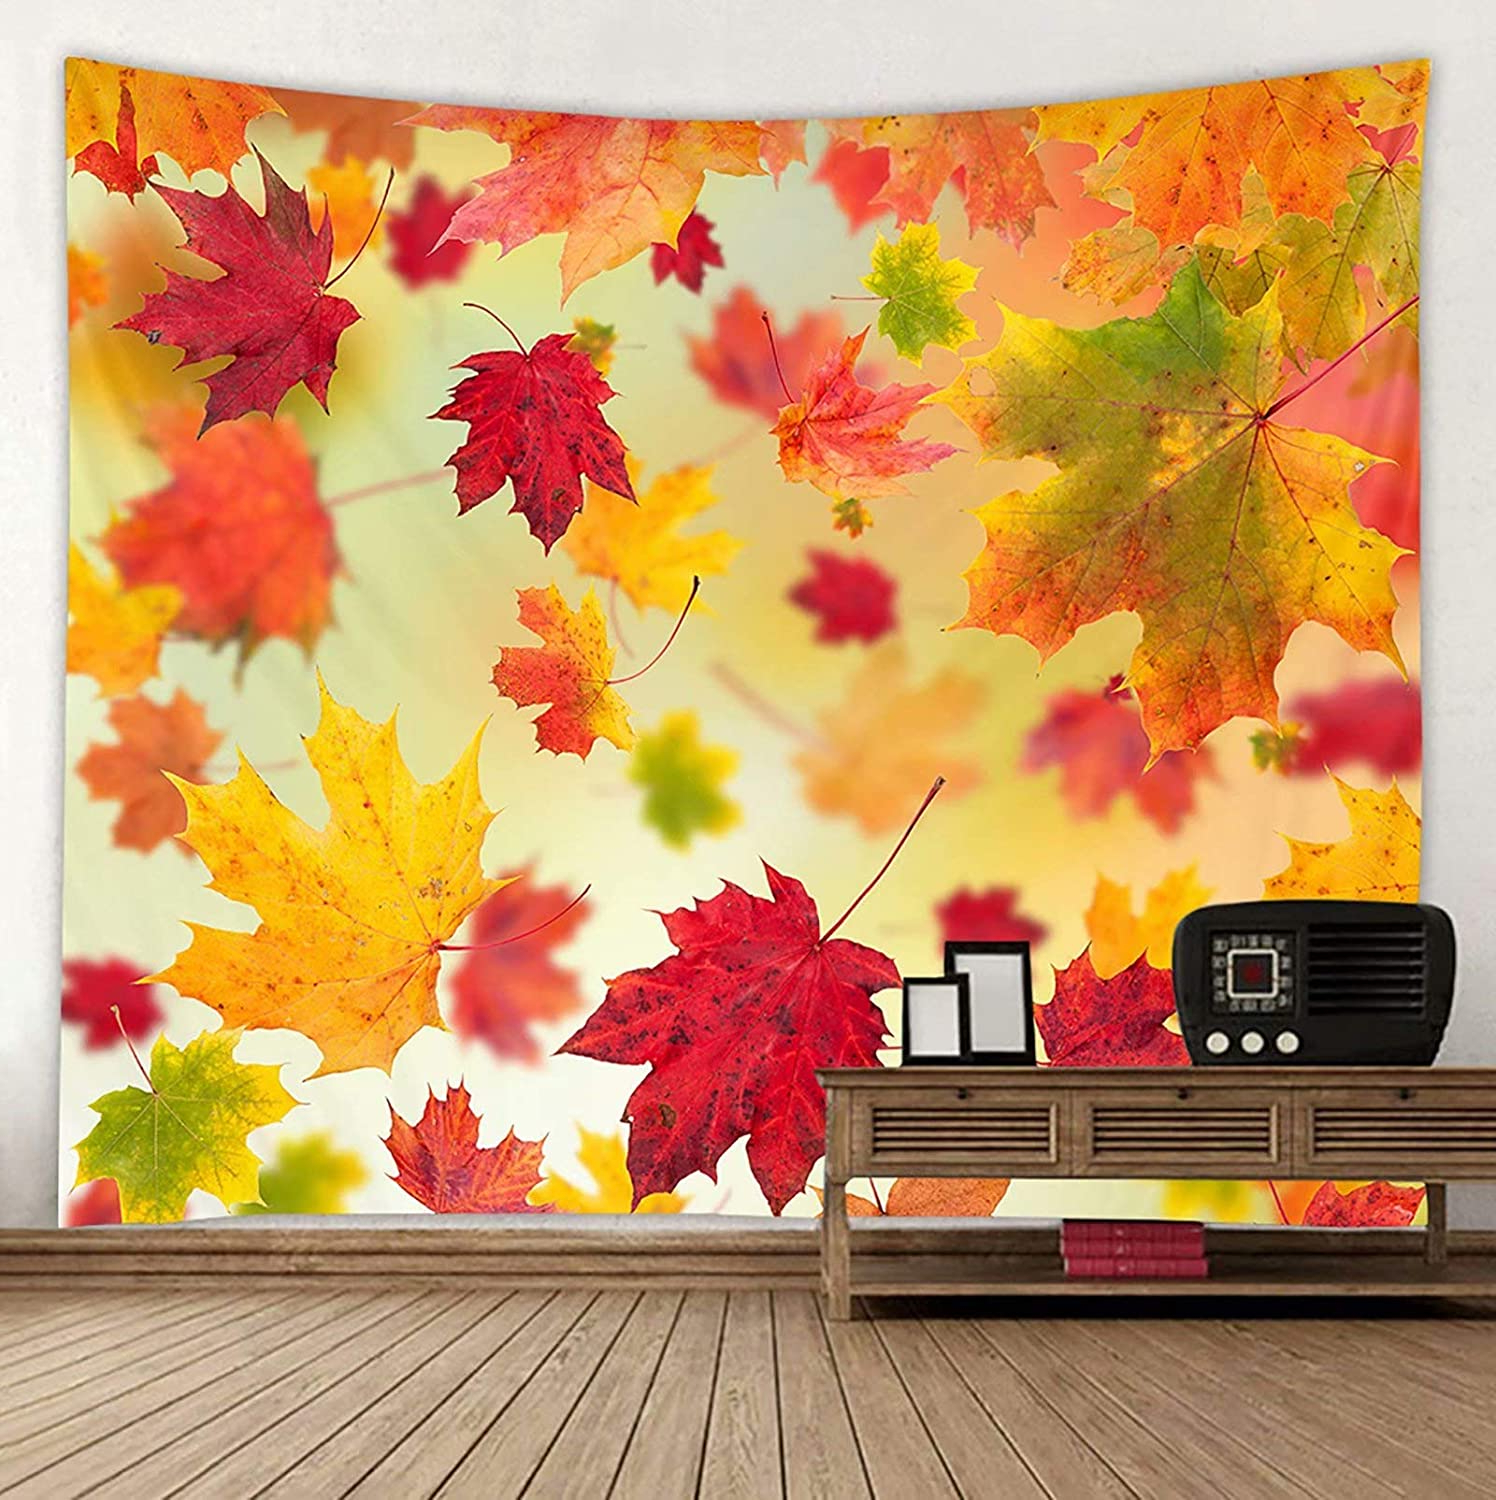 Shinesnow Fallen Fall Autumn Leaves Maple Wall Hanging Tapestry 60 X 51 Inches, Seasonal Golden Yellow House Decor Bedroom Living Room Dorm Tapestry Throughout 2019 Blended Fabric Leaf Wall Hangings (View 5 of 20)